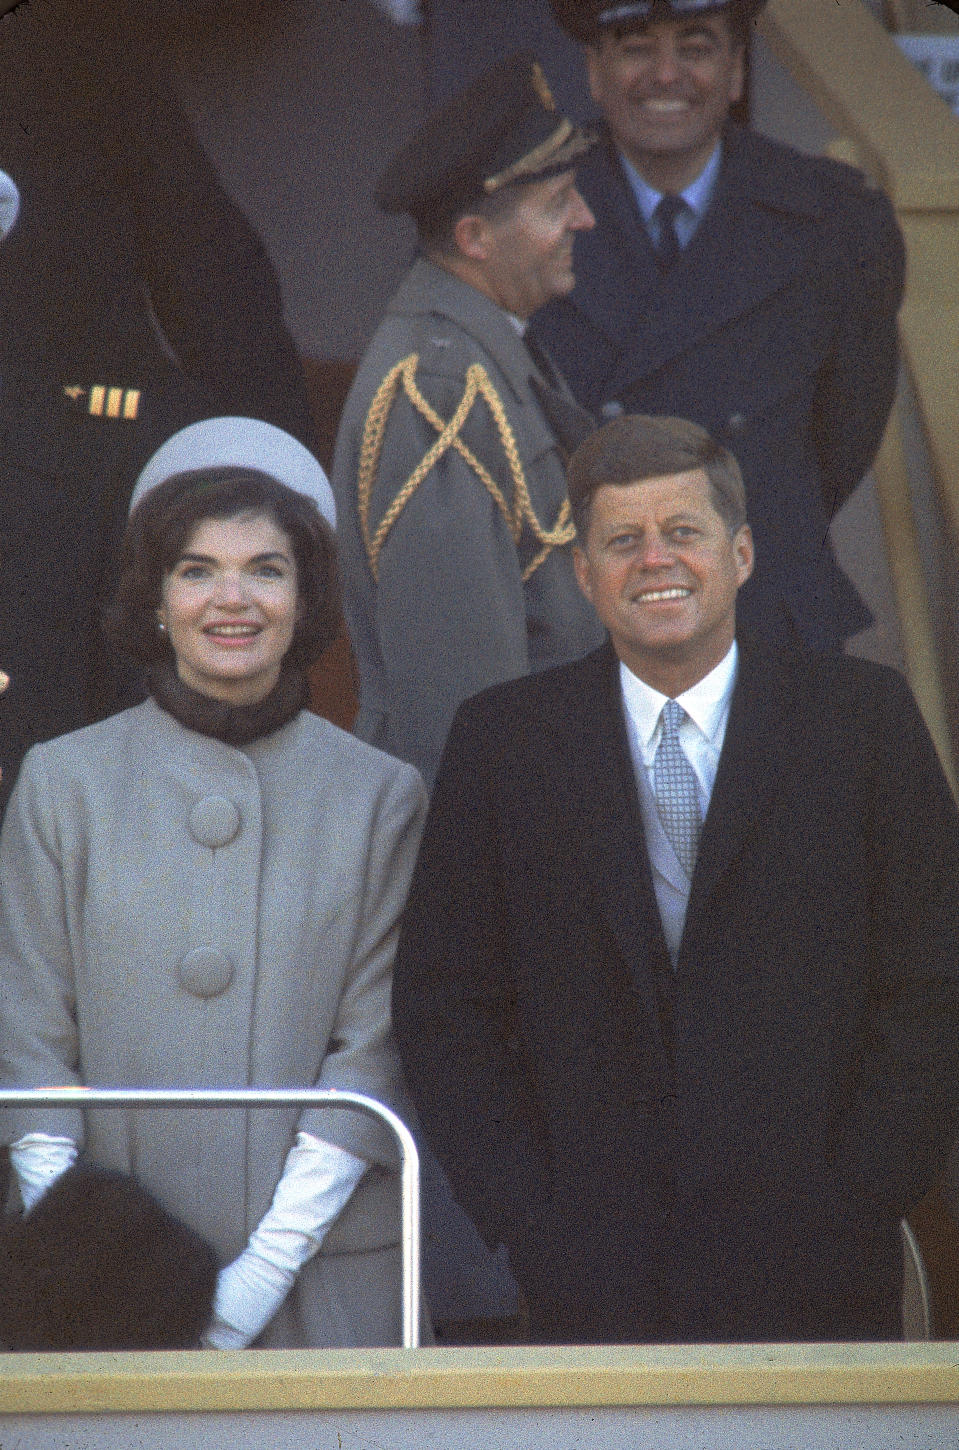 DISTRICT OF COLUMBIA, UNITED STATES - 1961:  President Kennedy (R) with First Lady Jackie (L) (in fur-trimmed suit designed by Oleg Cassini) at his inauguration.  (Photo by Leonard McCombe/Life Magazine/The LIFE Picture Collection/Getty Images)